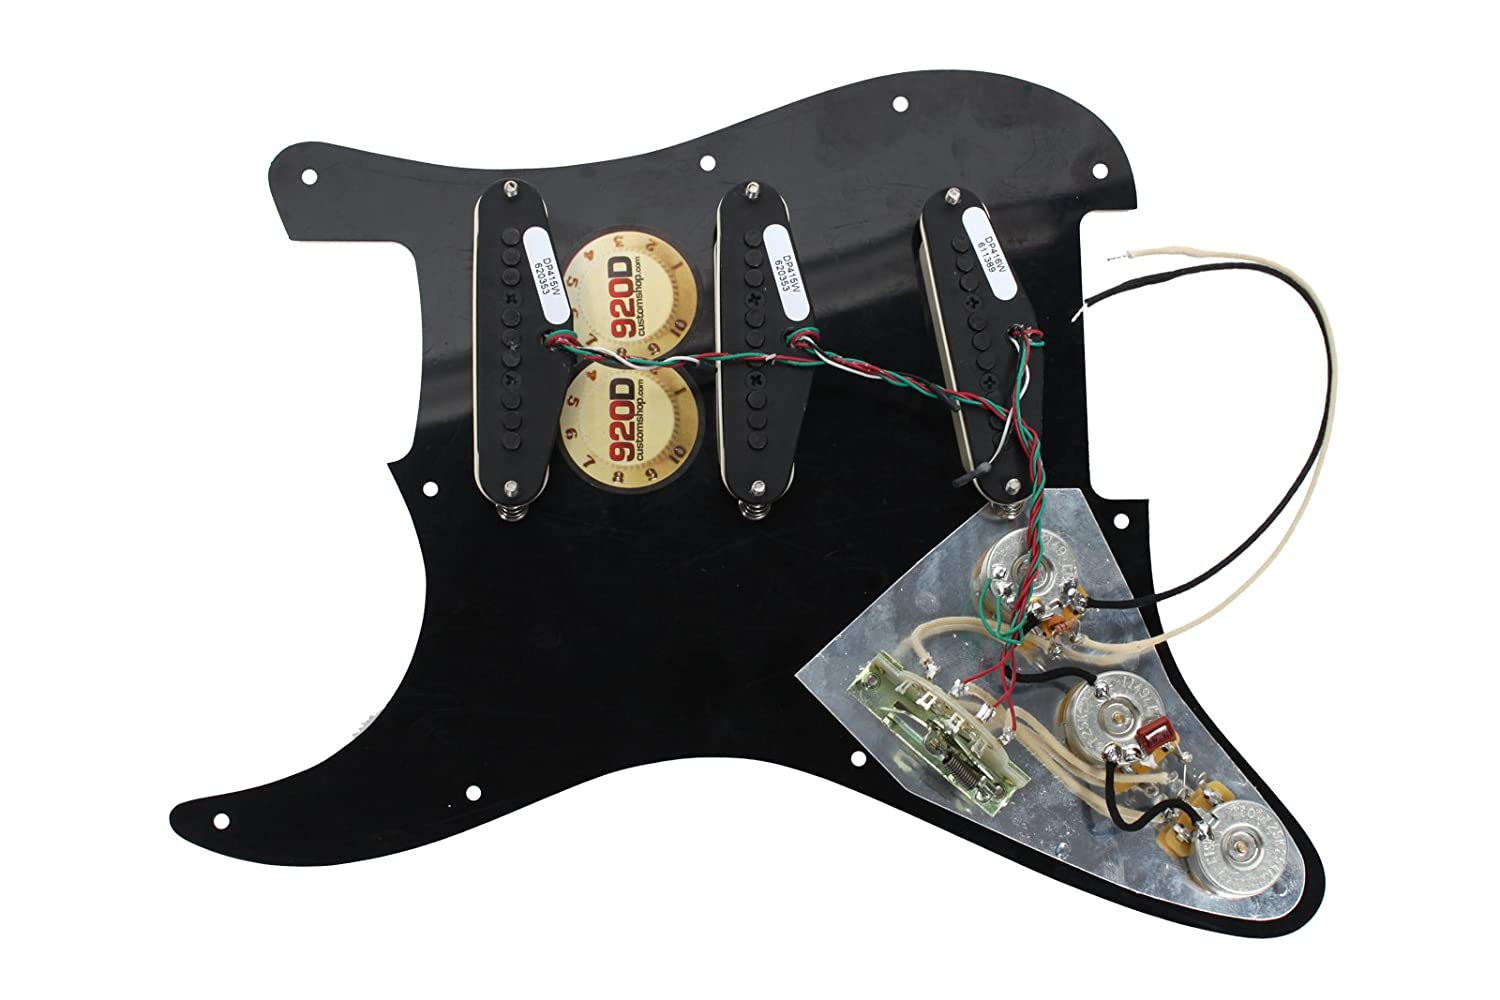 Dimarzio Area 58 61 Lincoln Brewster Loaded Wiring Diagrams Pickguard Prewired To Aw Musical Instruments